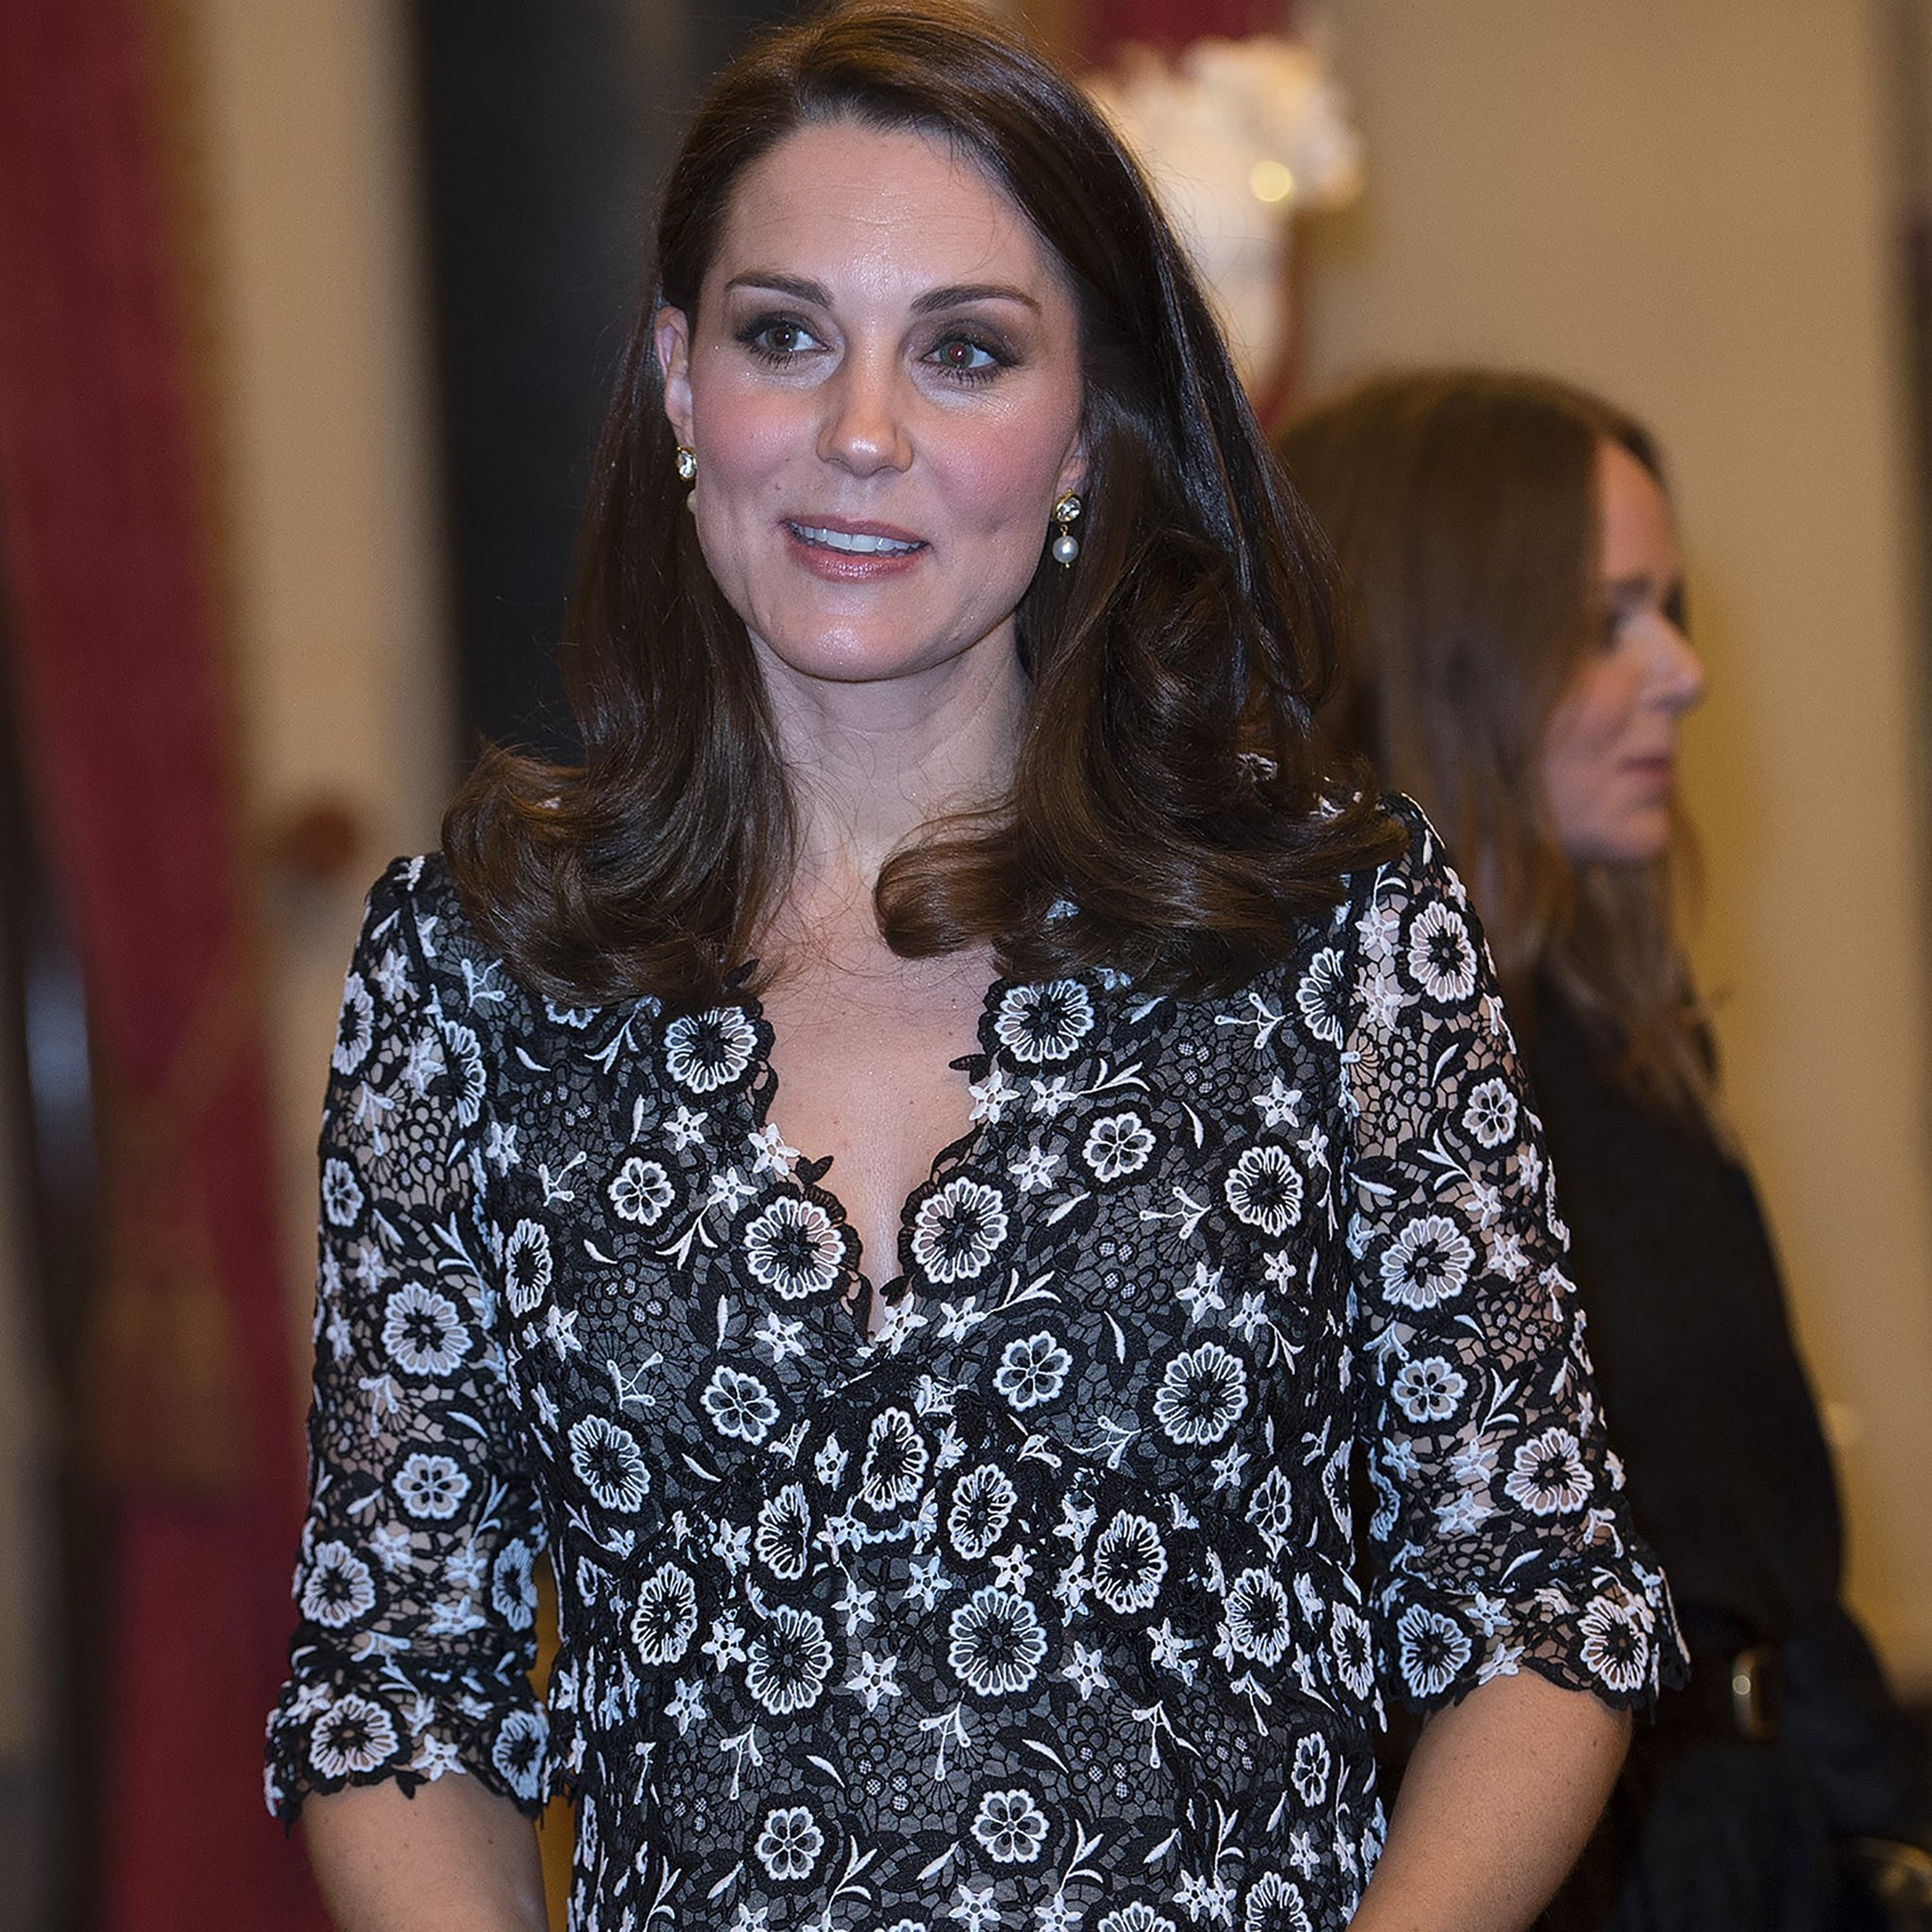 20fa6efe85931 boohoo Plus Dahlia Crochet Lace Ruffle Detail Midi Dress | Kate Middleton  Black and White Floral Erdem Dress | POPSUGAR Fashion UK Photo 15